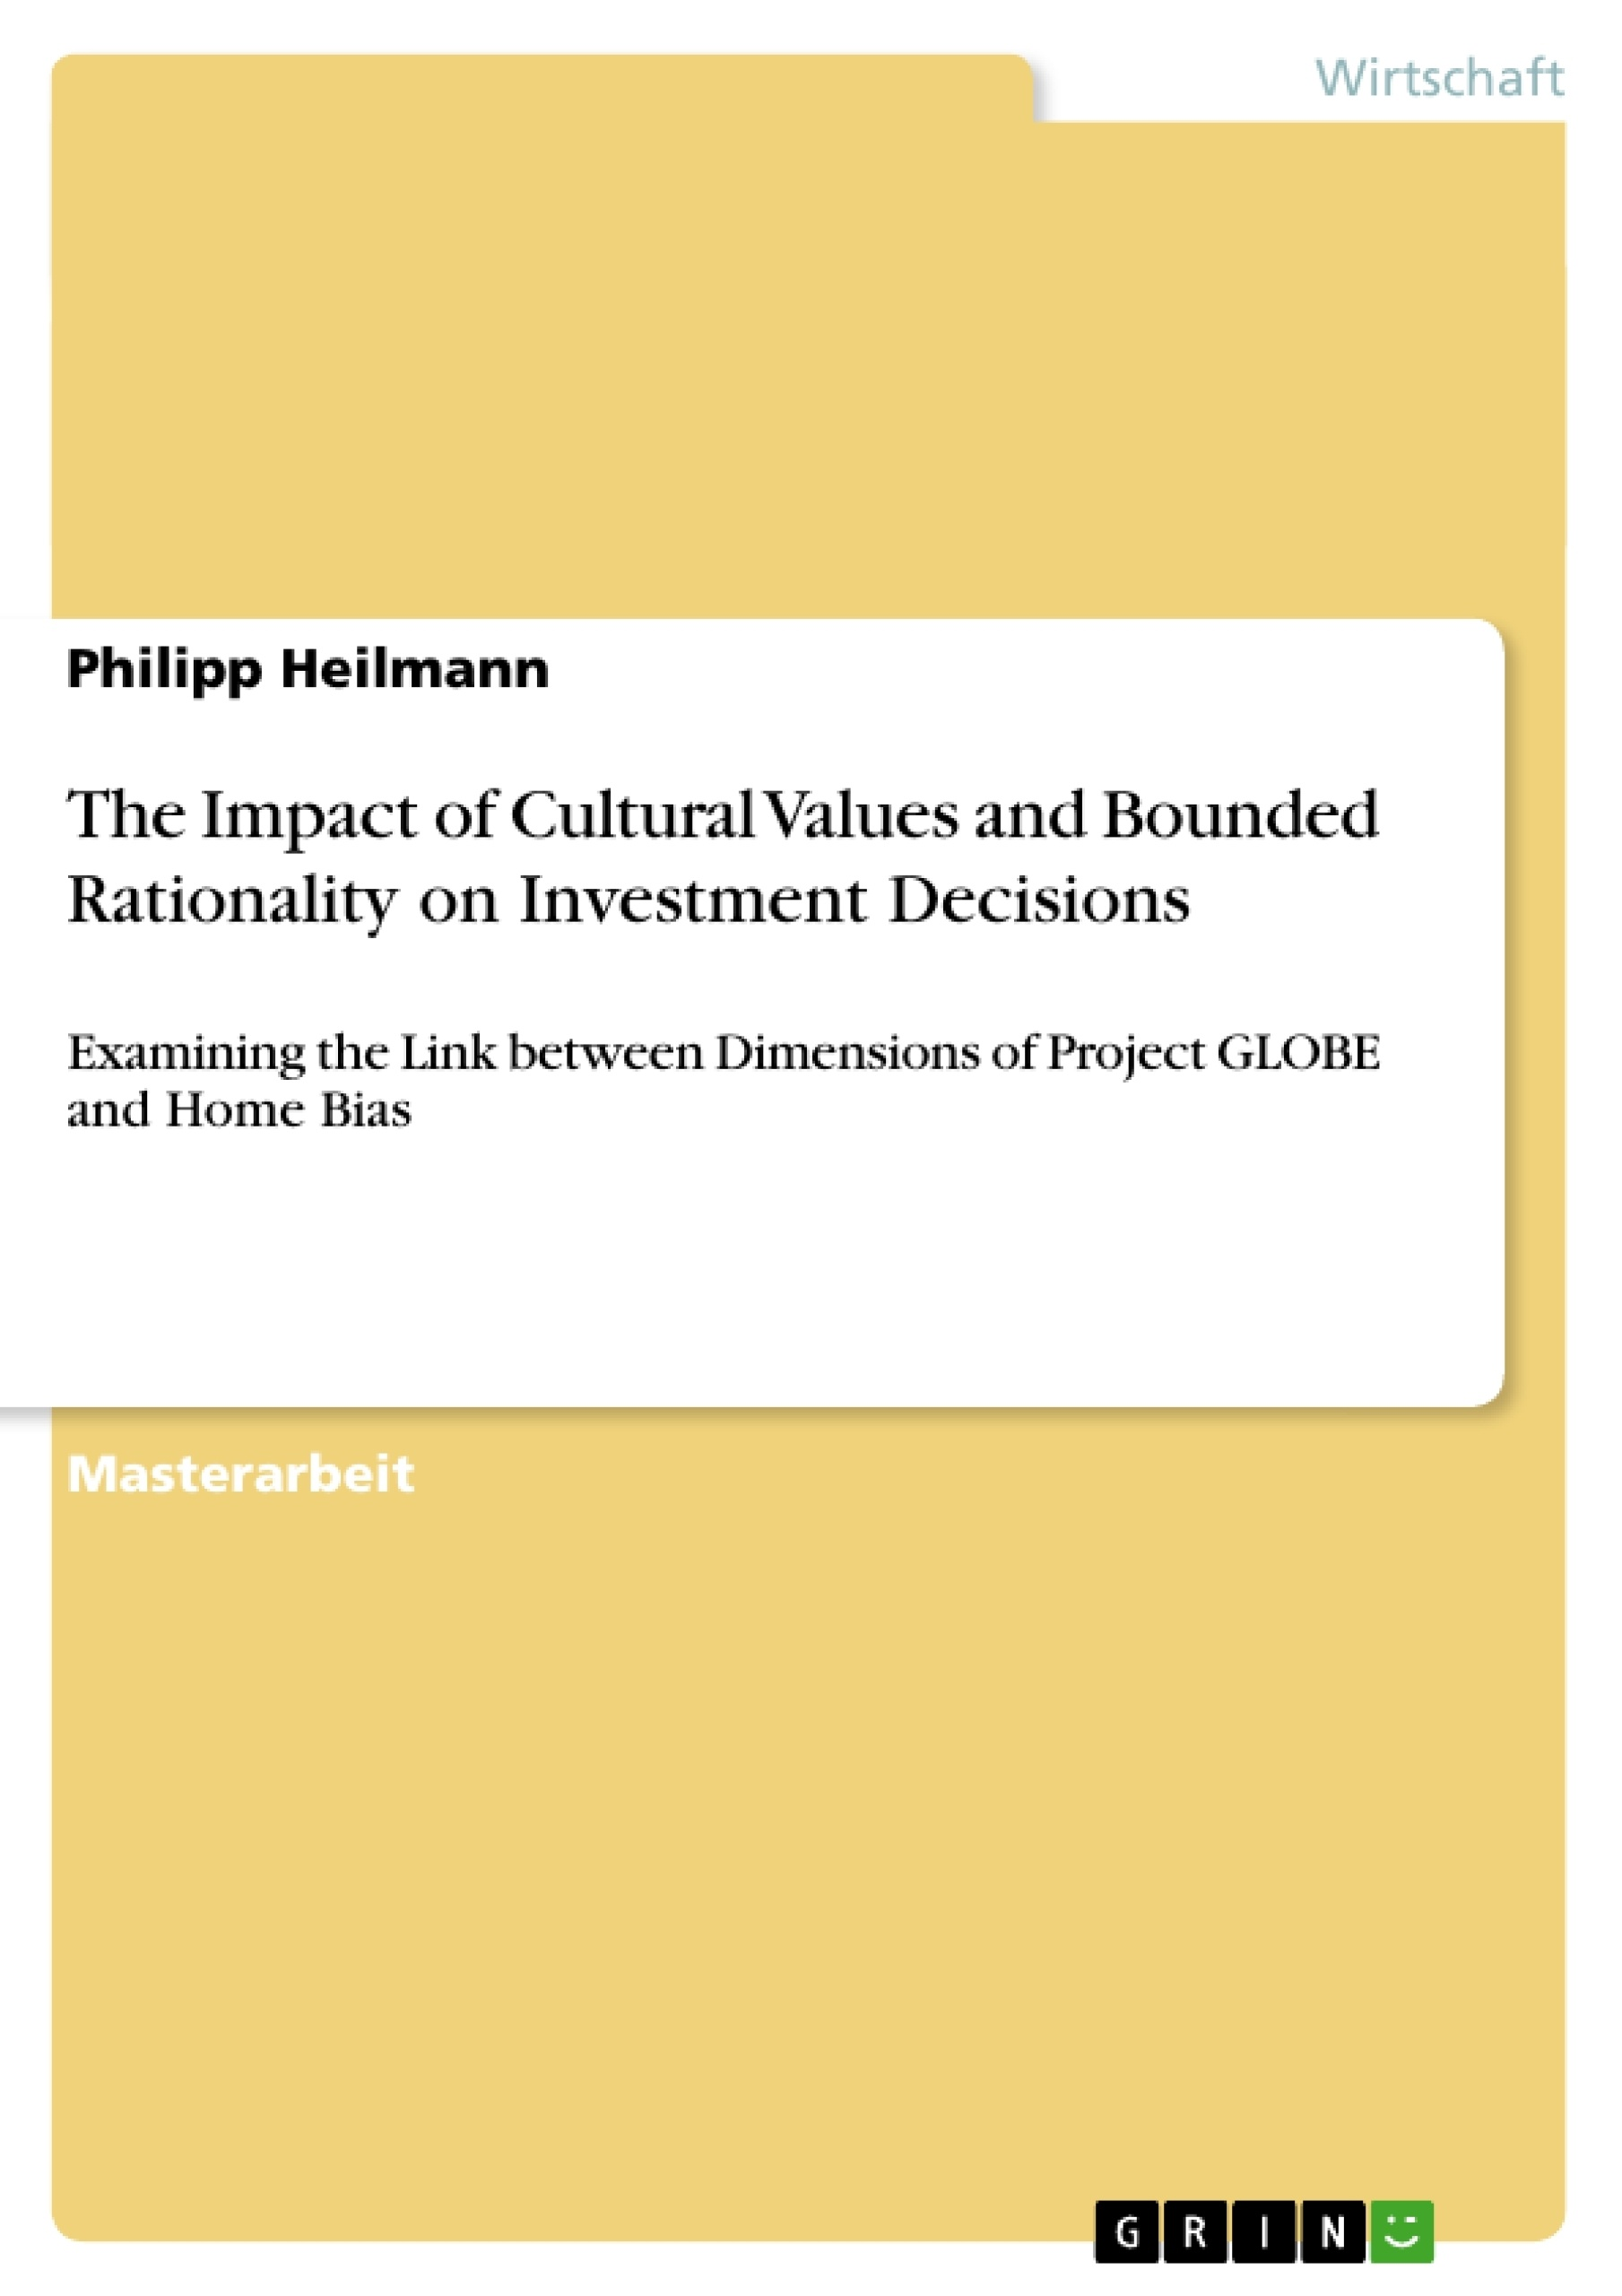 Titel: The Impact of Cultural Values and Bounded Rationality on Investment Decisions